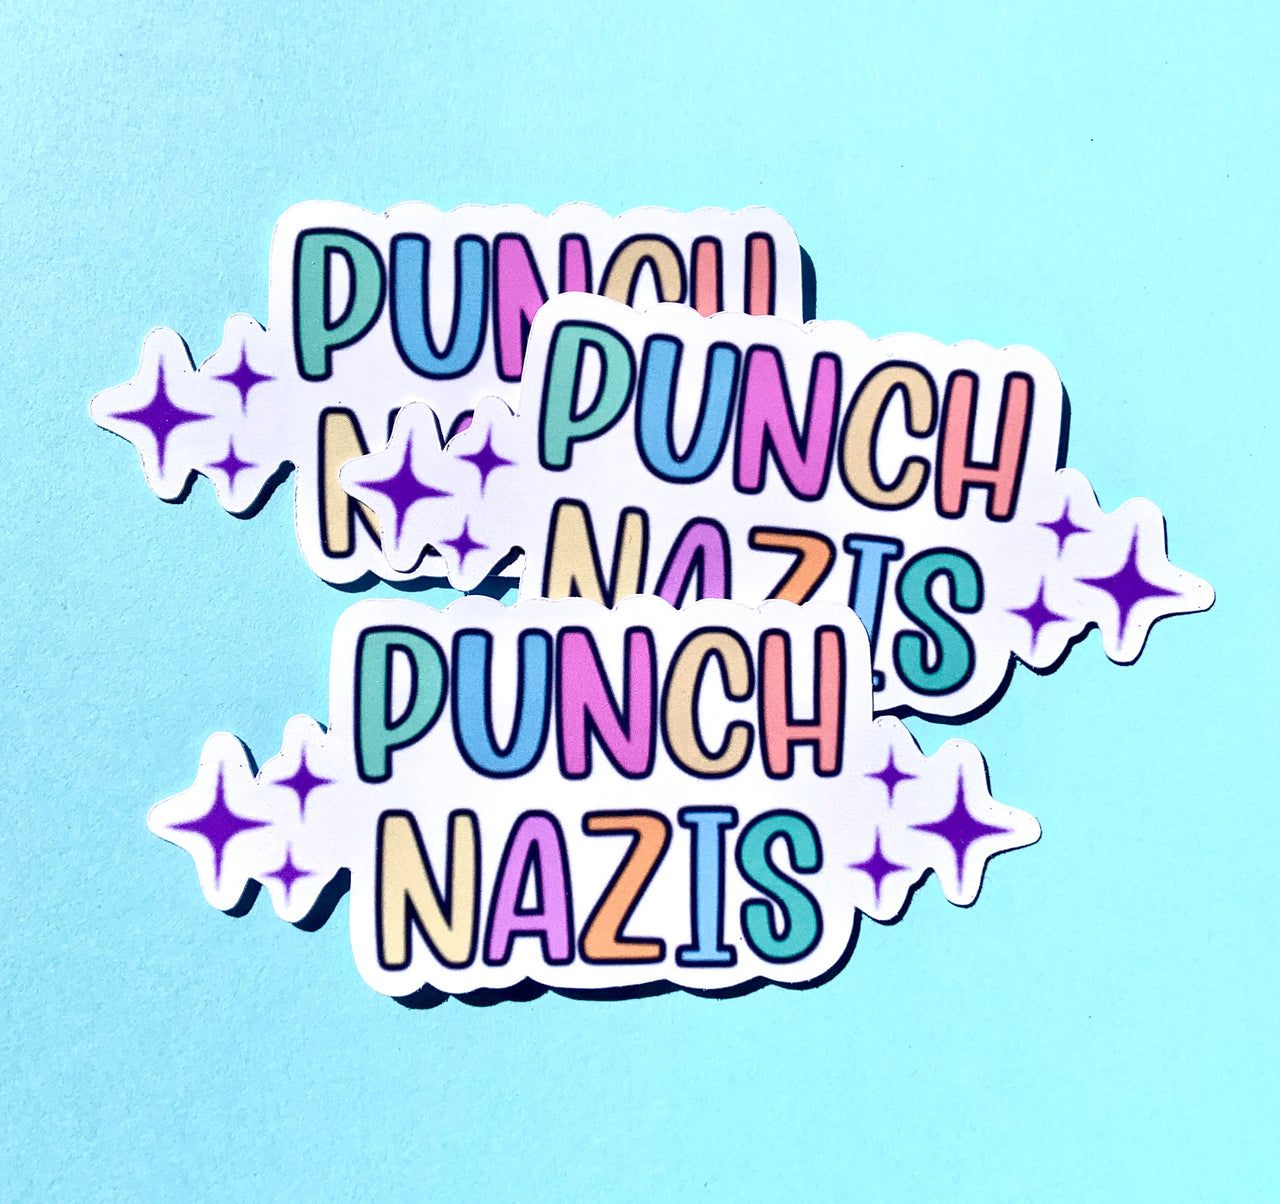 Punch Nazis stickers (pack of 3 or 5)